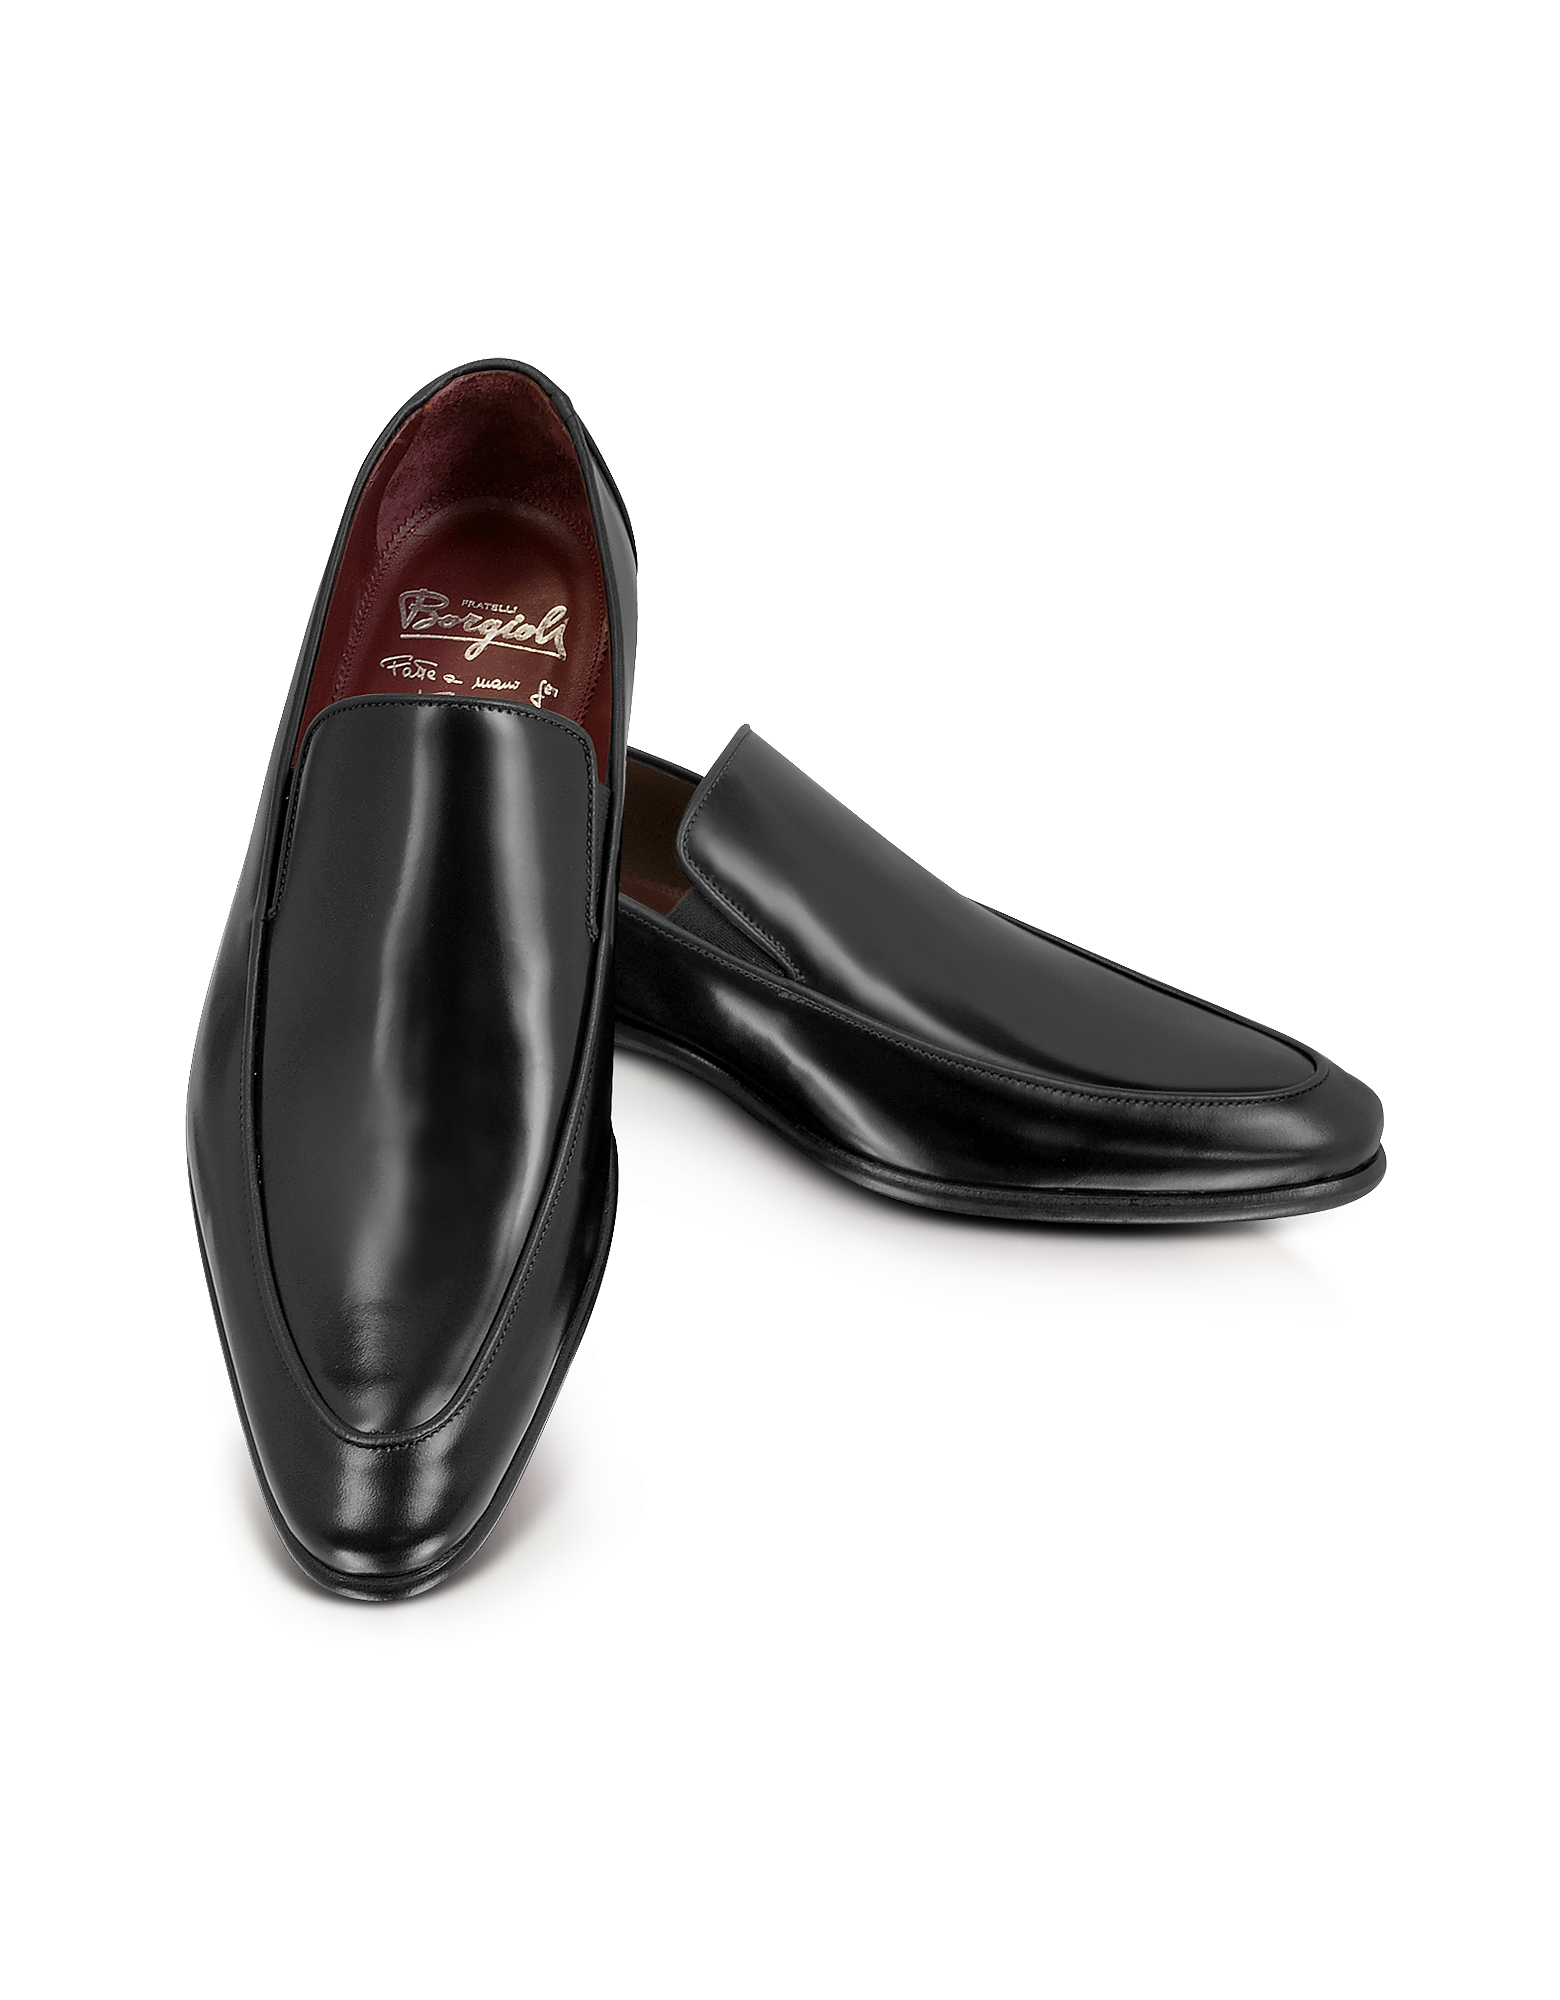 Fratelli Borgioli Shoes, Cricket Black Leather Loafer